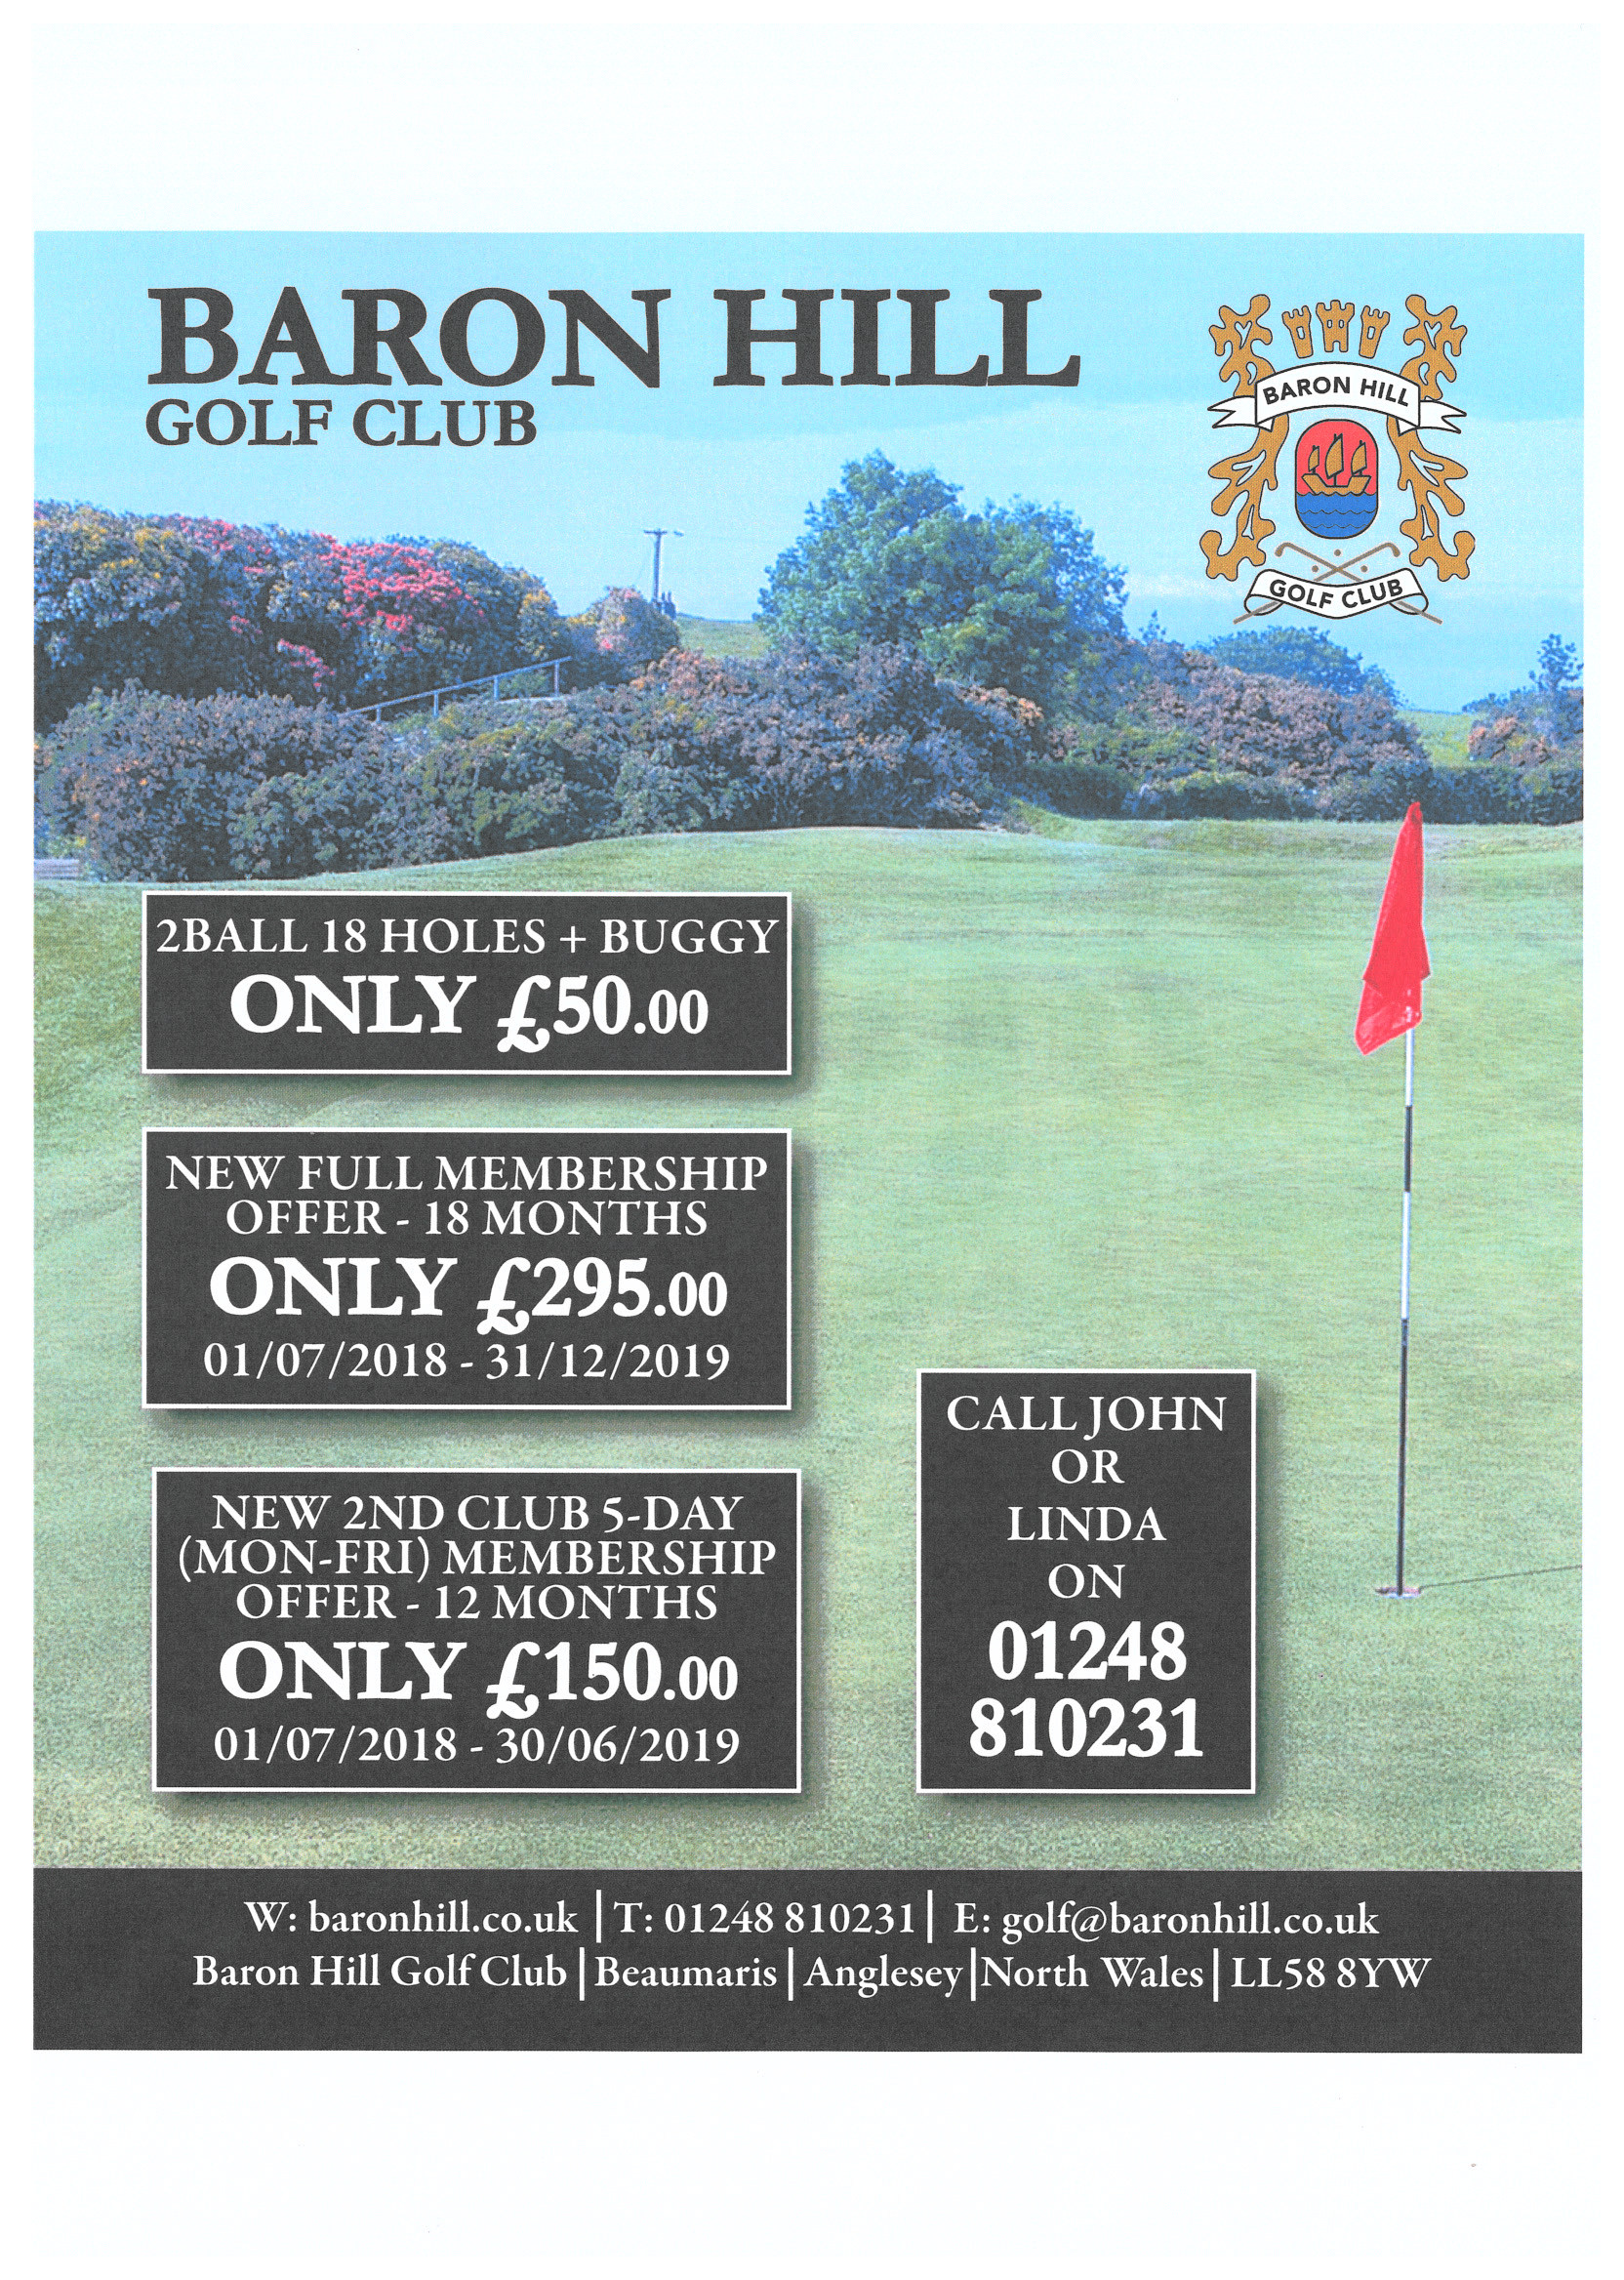 LATEST OFFERS FOR NEW MEMBERS & SUMMER GREEN FEES